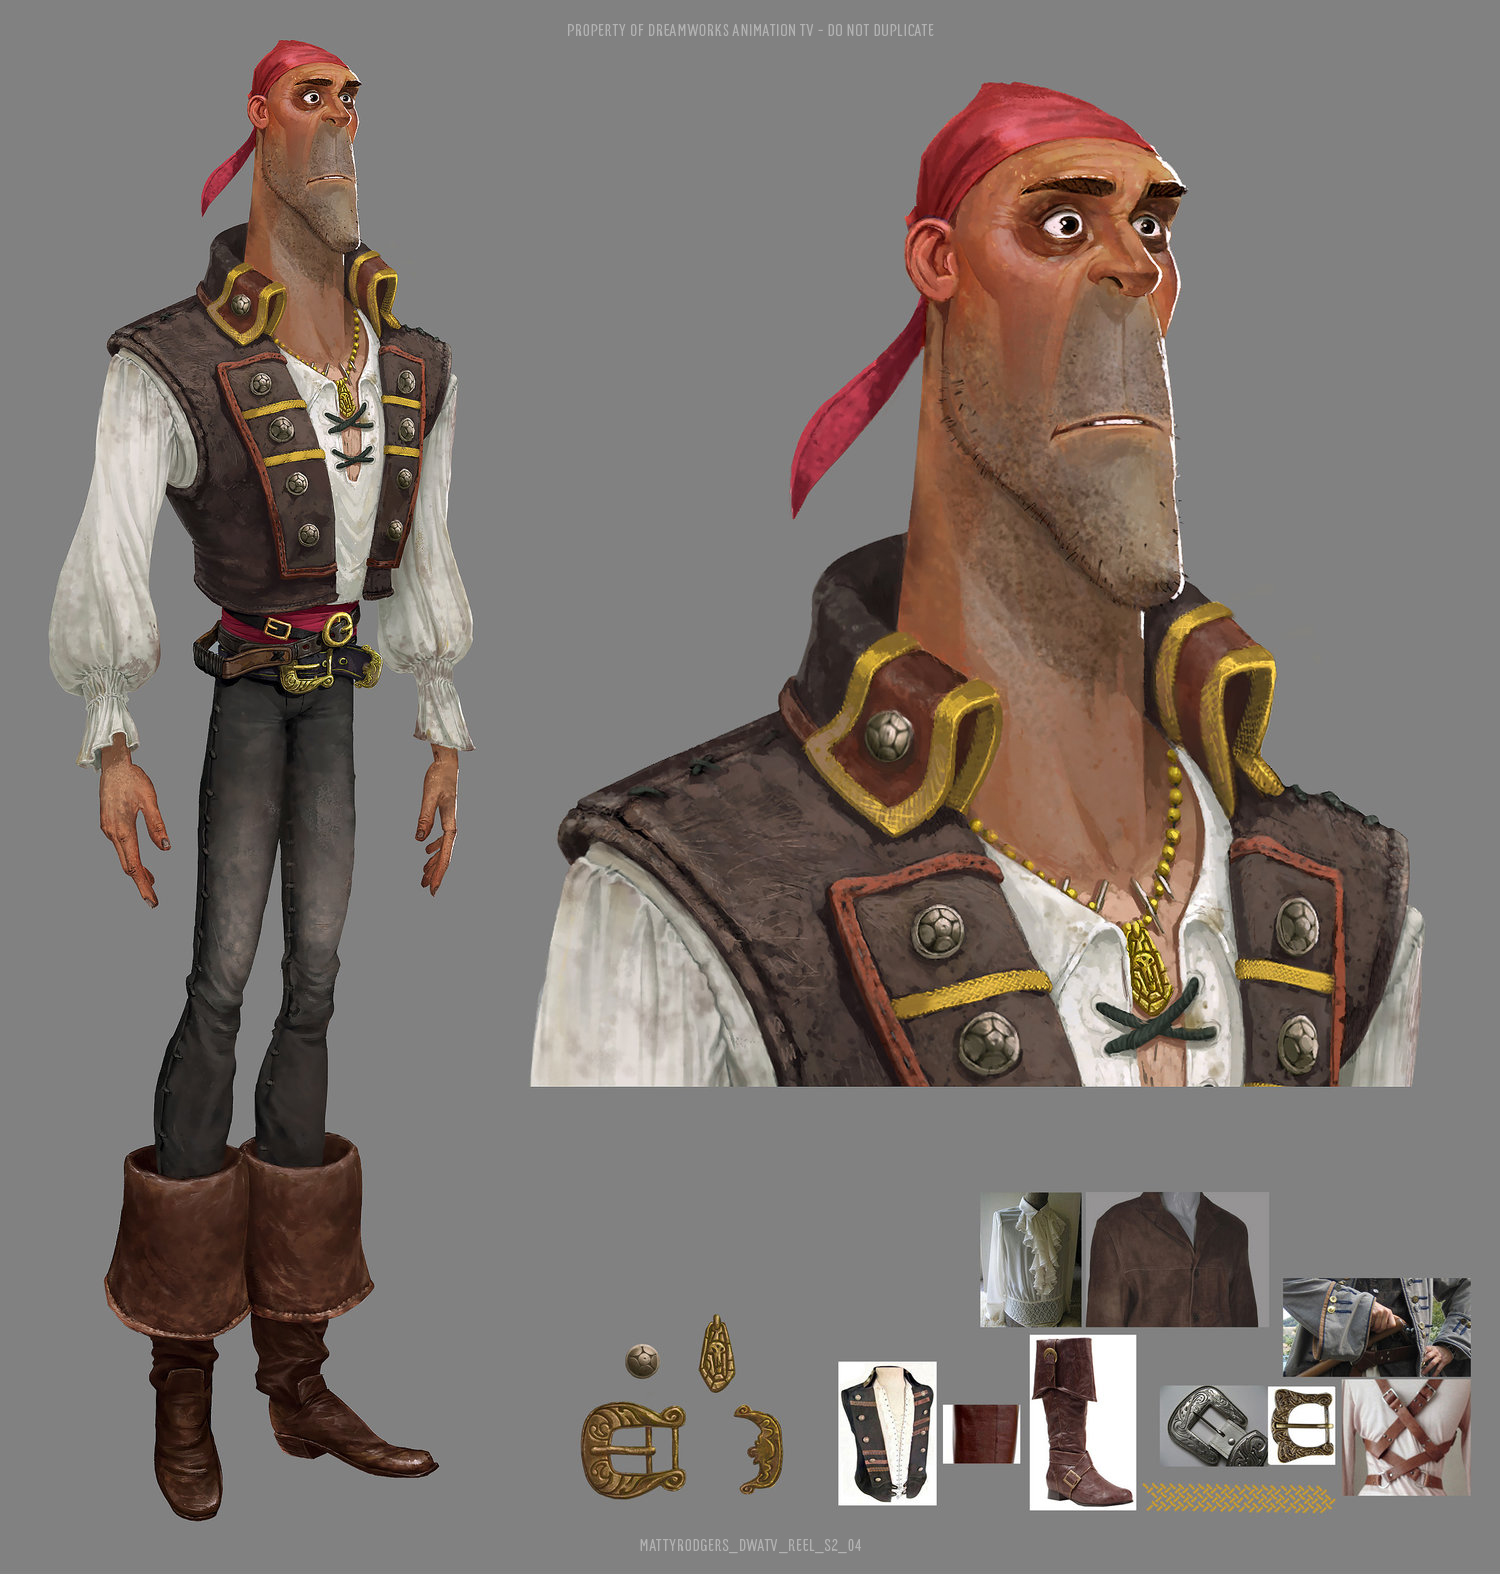 Character design by Guillermo Ramírez Calvo. Colour by Matty. Art direction by Edison Yan.  I believe Edison painted directly into this guys face near the end to really up the sun aged leather look.